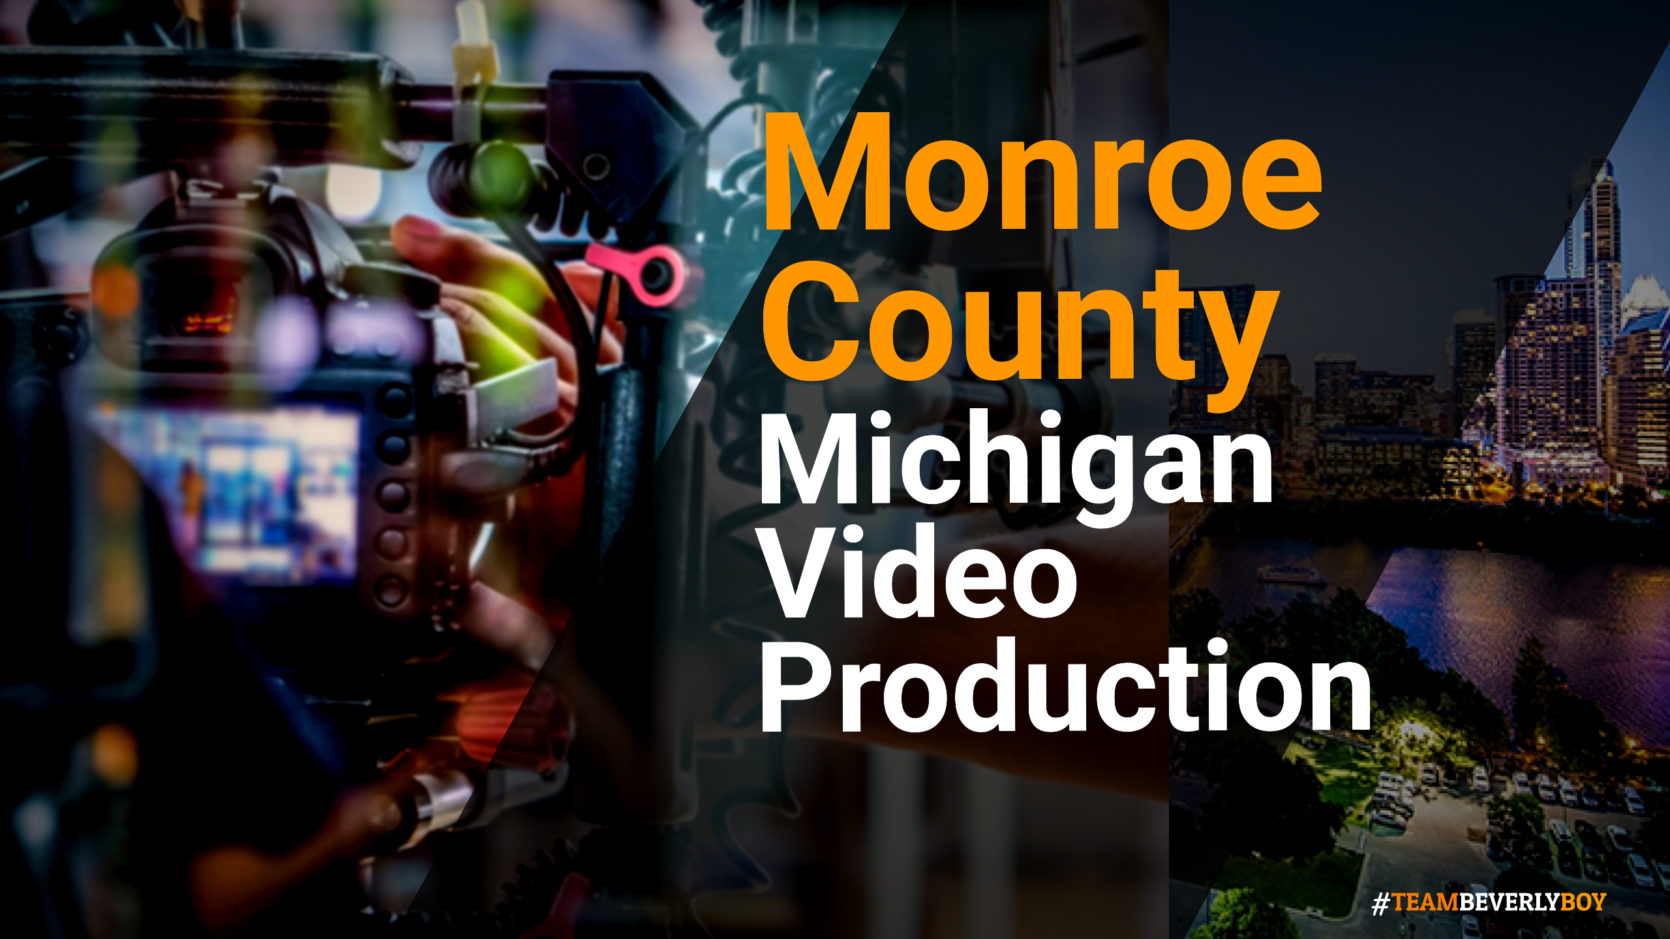 Monroe County, MI Video Production Services in 2021